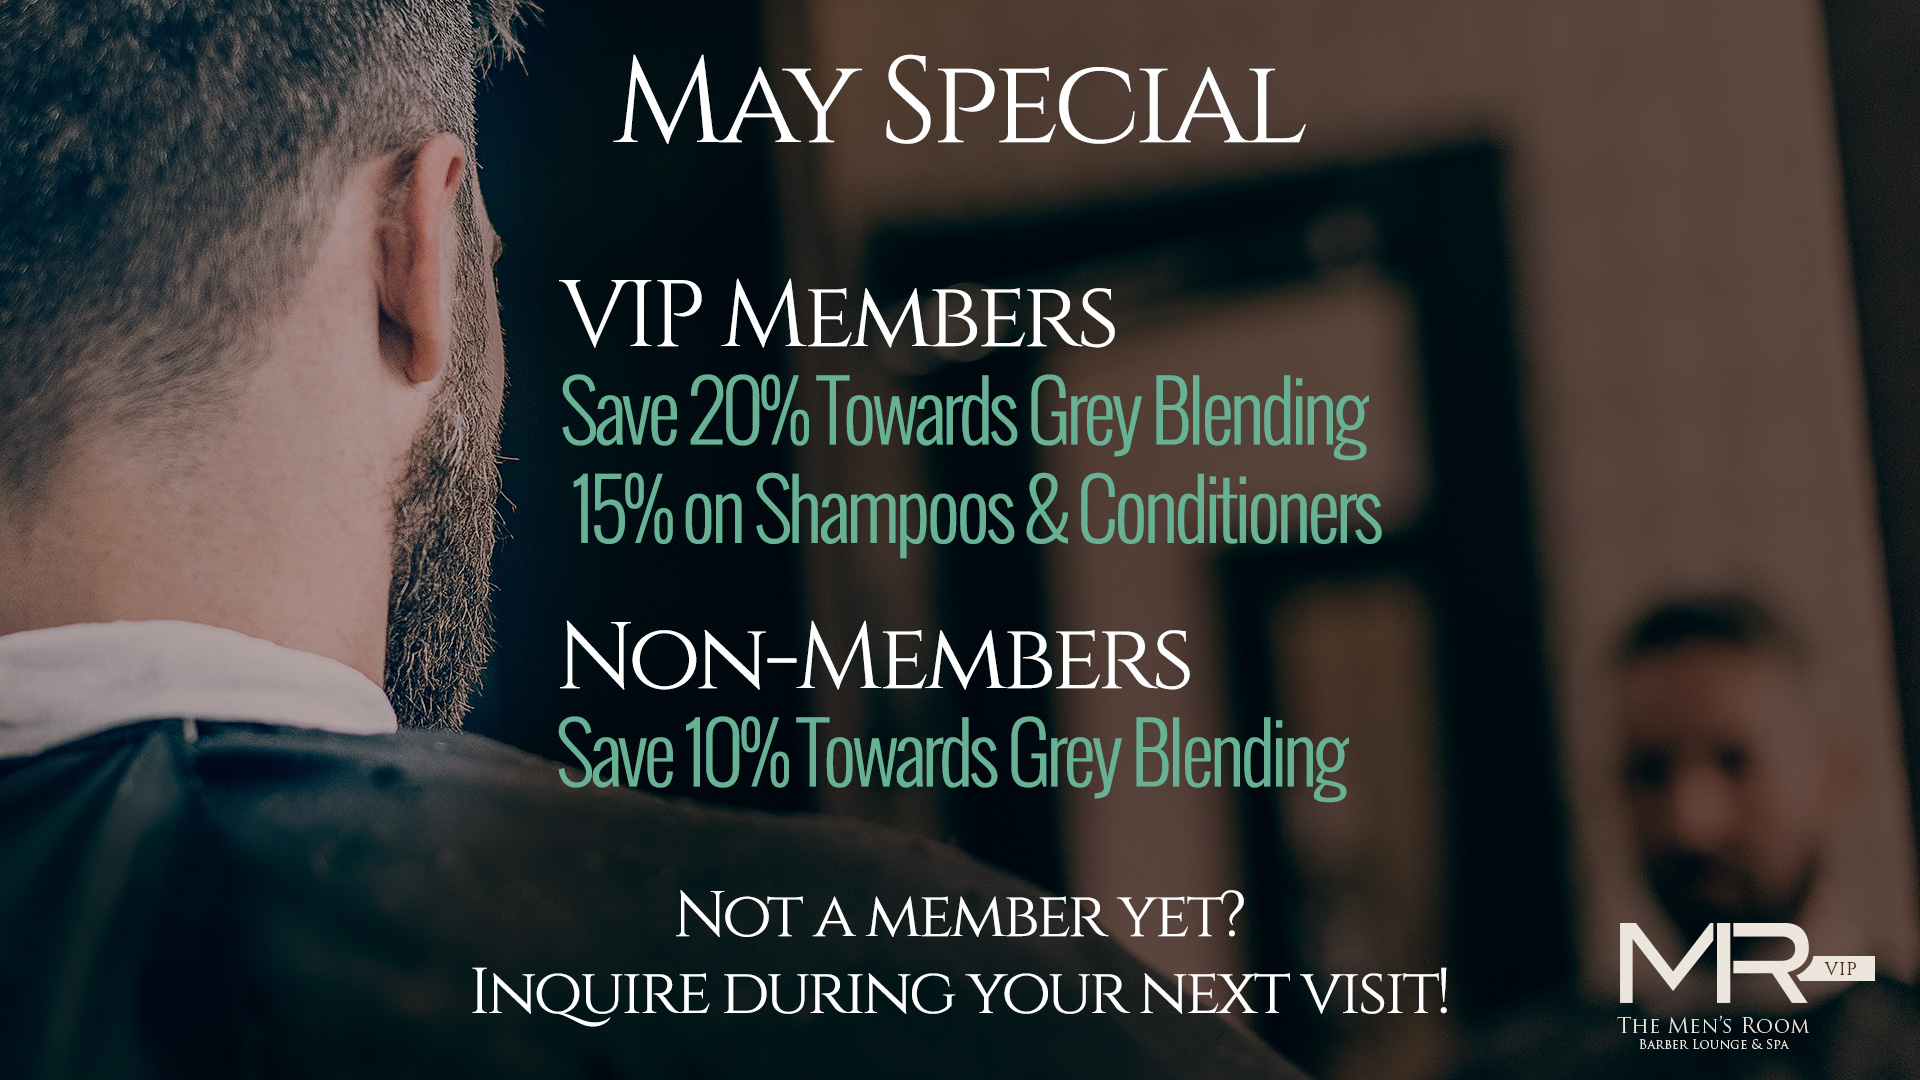 Men's Room Barber, Spa, & Lounge Monthly Special